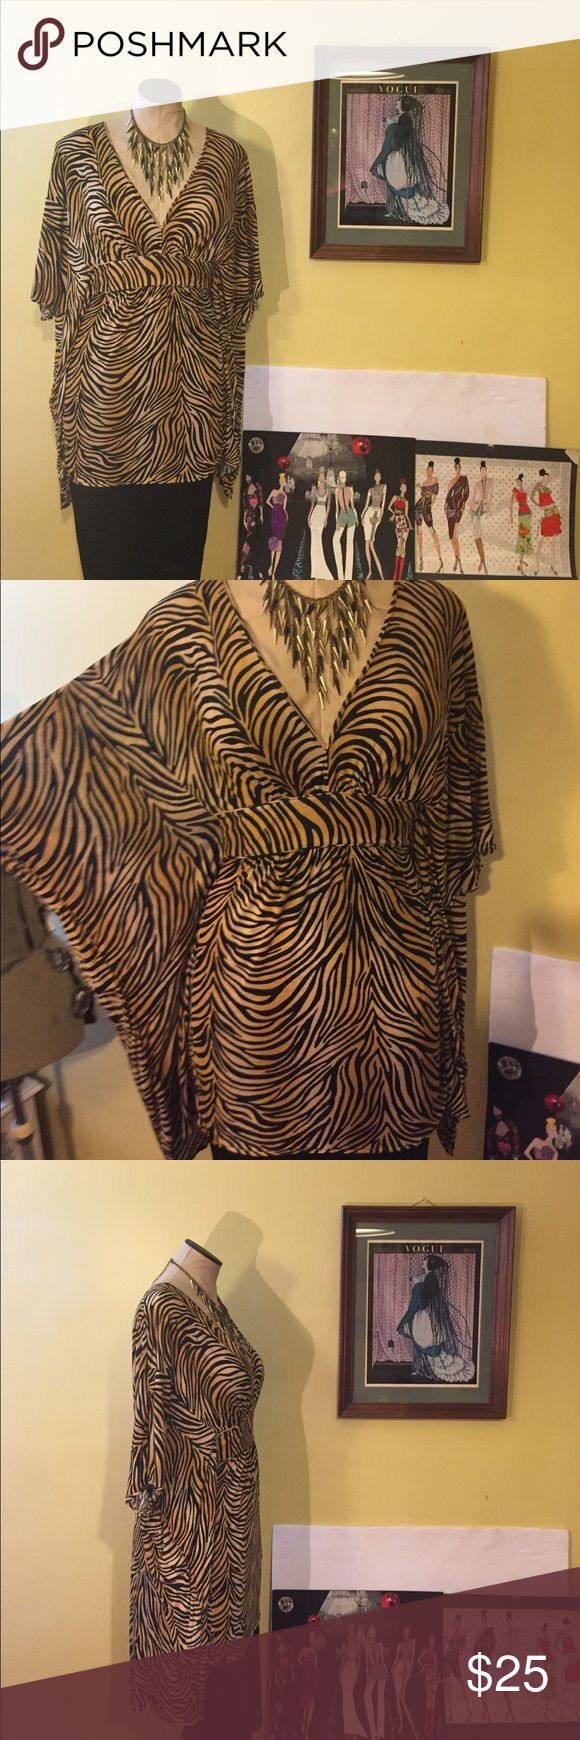 👁🐆BCBG MAXAZRIA ANIMAL TOP👁 This top is amazing!!! Great stretch, can complement any pant, skirt or leggings. If purchase full price you will receive a black pencil skirt. Size Junior L. But a medium, large and a small waist Xlarge can fit. Get your fall wardrobe excited!!! Now🈴 BCBGMaxAzria Tops Tunics